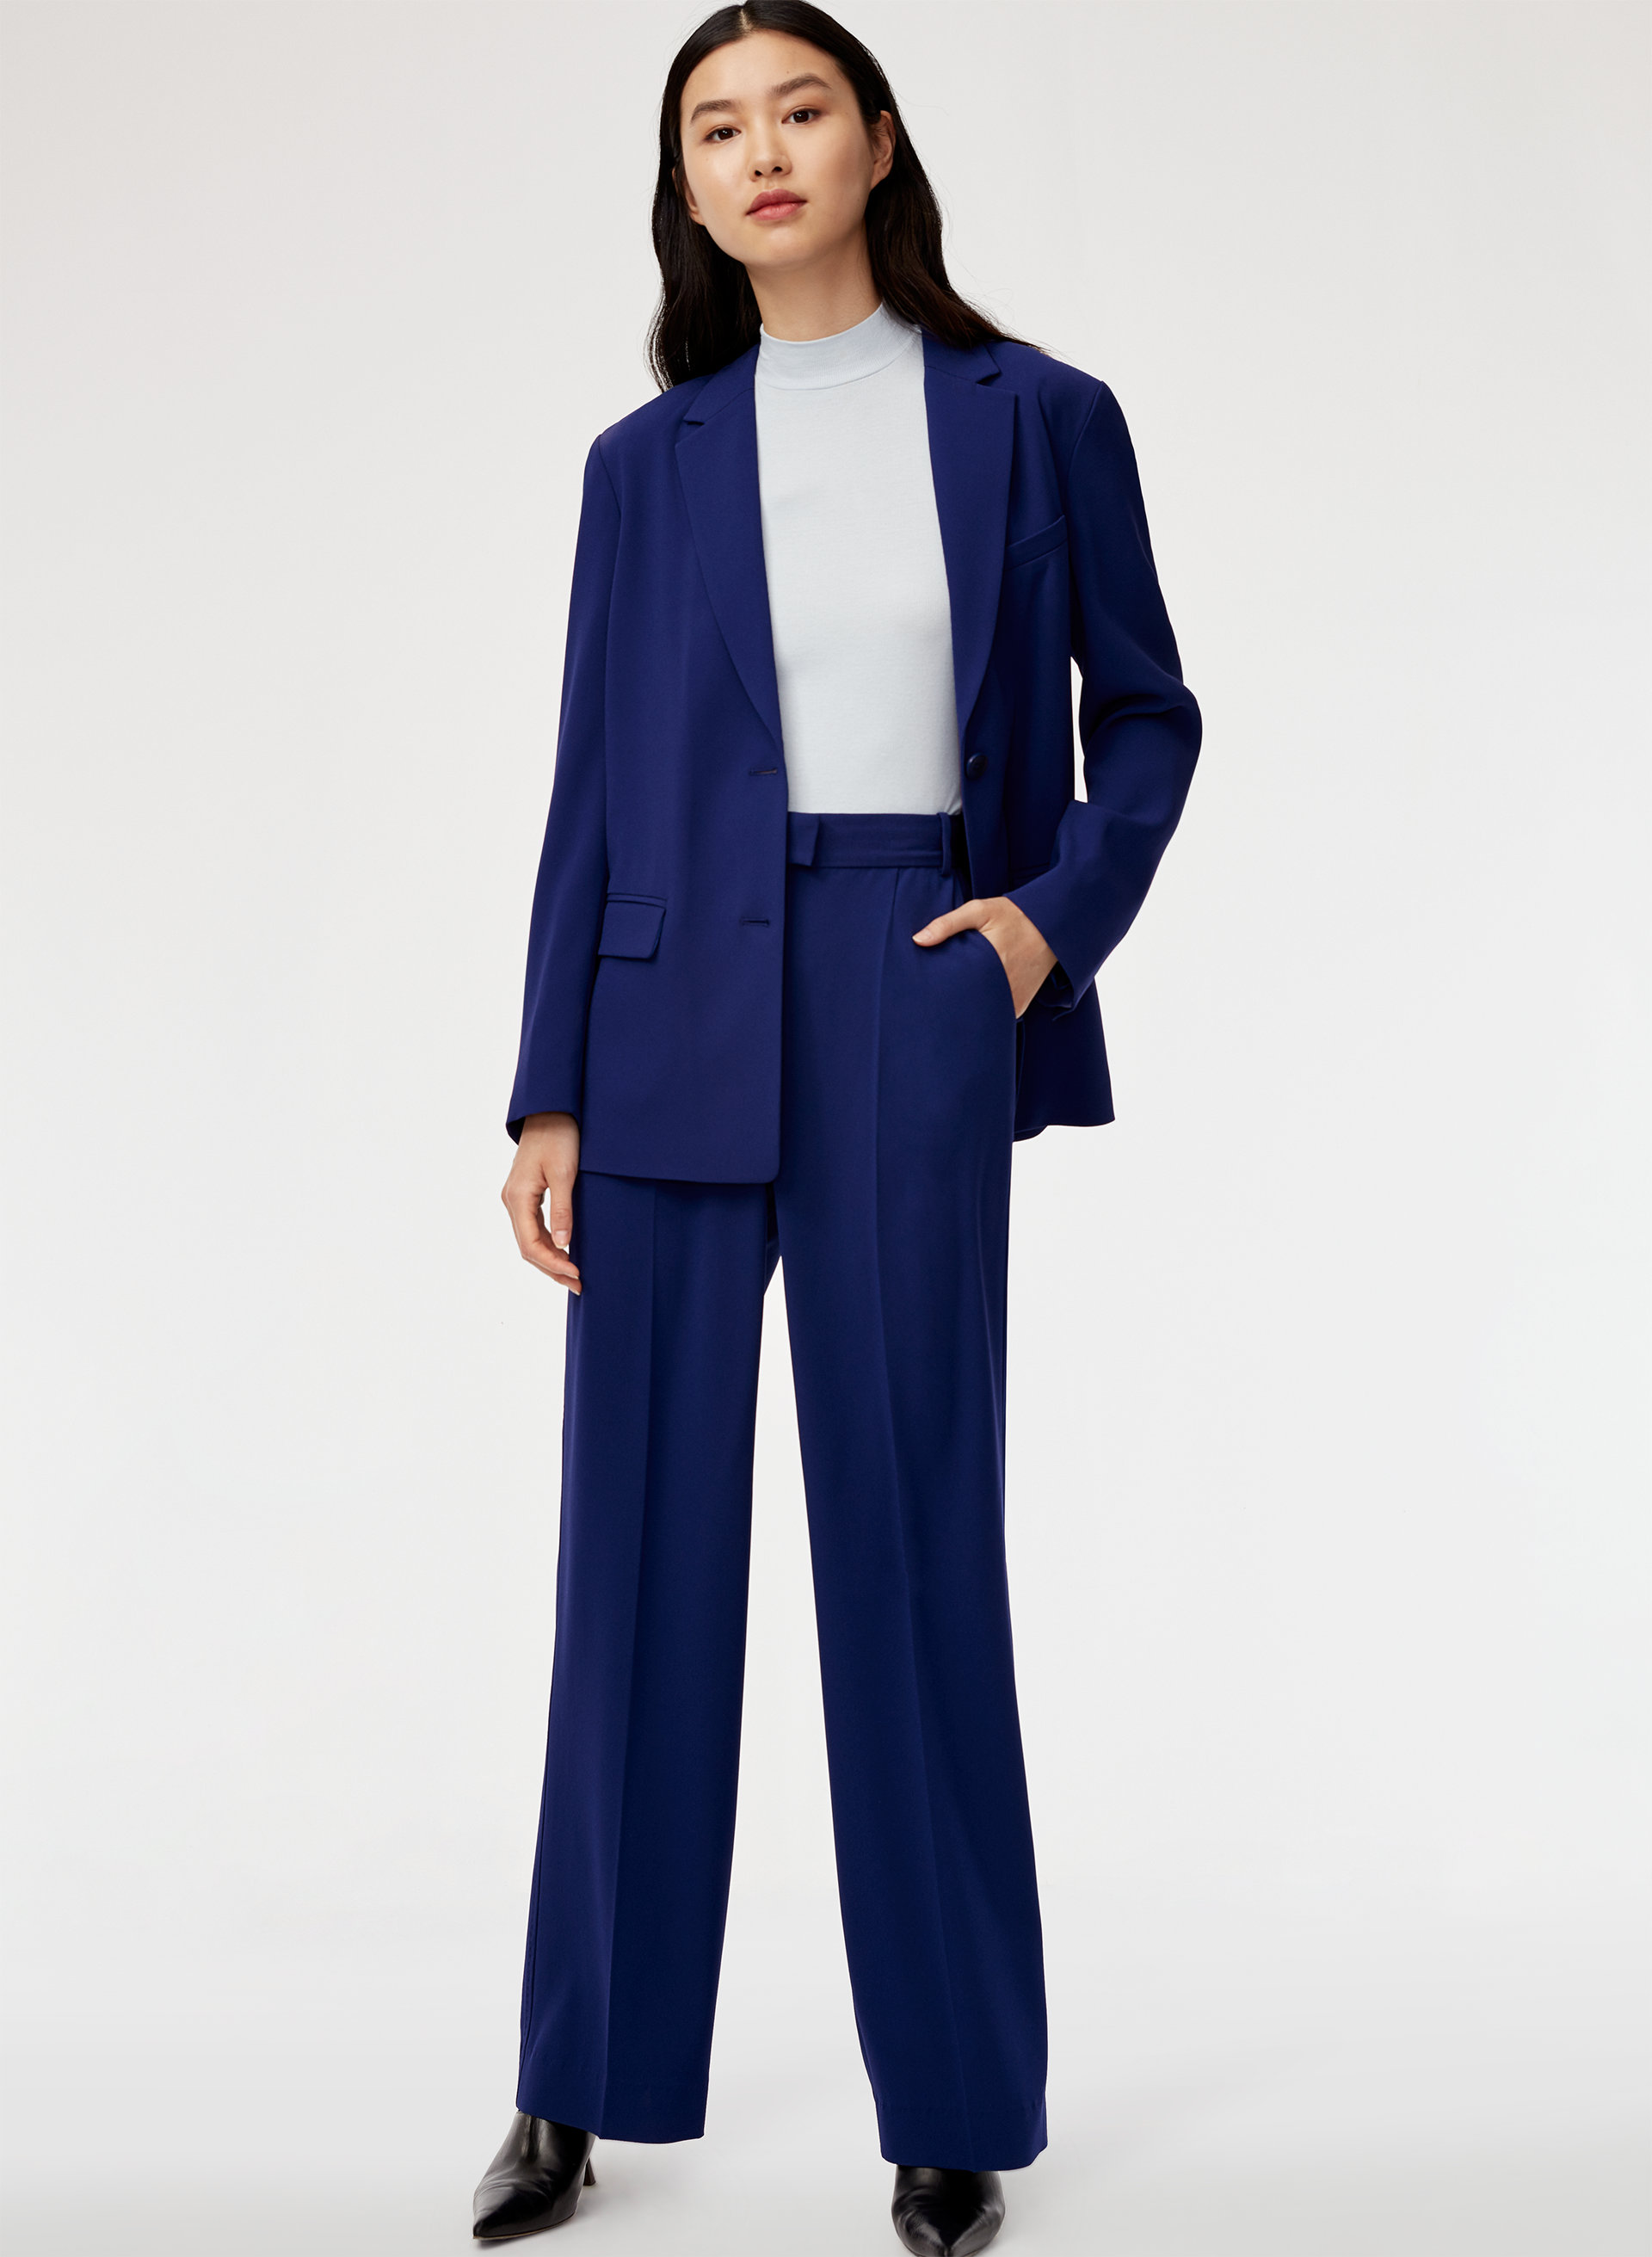 A woman wears a navy blue matching two piece suit from Aritzia.